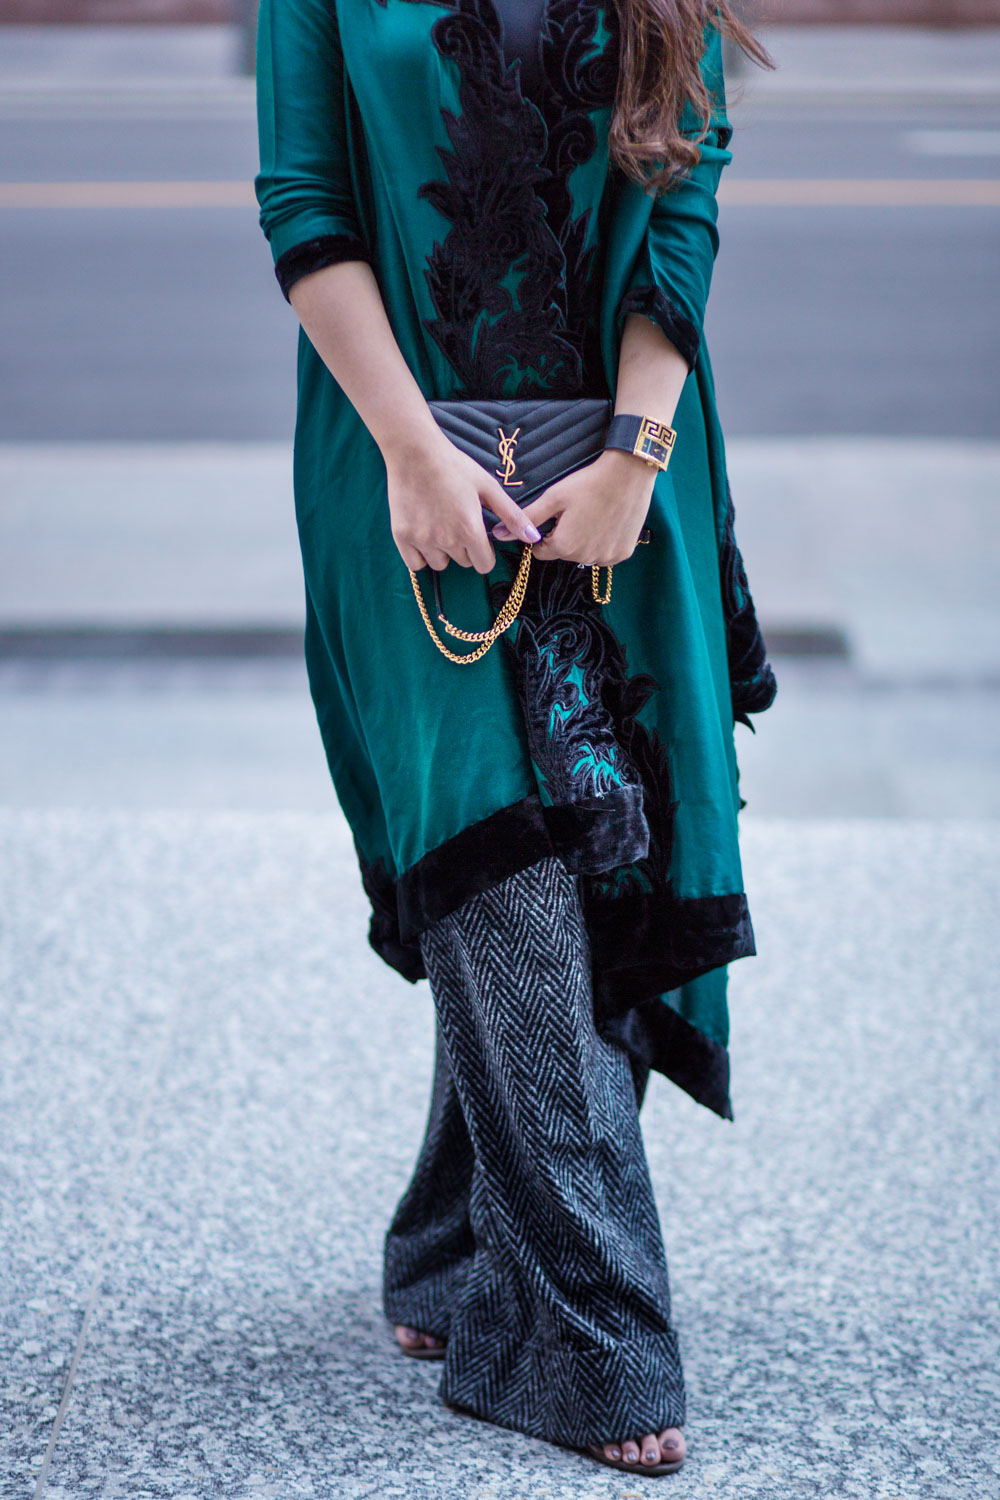 green-cape-allena-fareena-pakistani-fusion-eastern-western-wide-leg-pants-zara-ysl-black-7